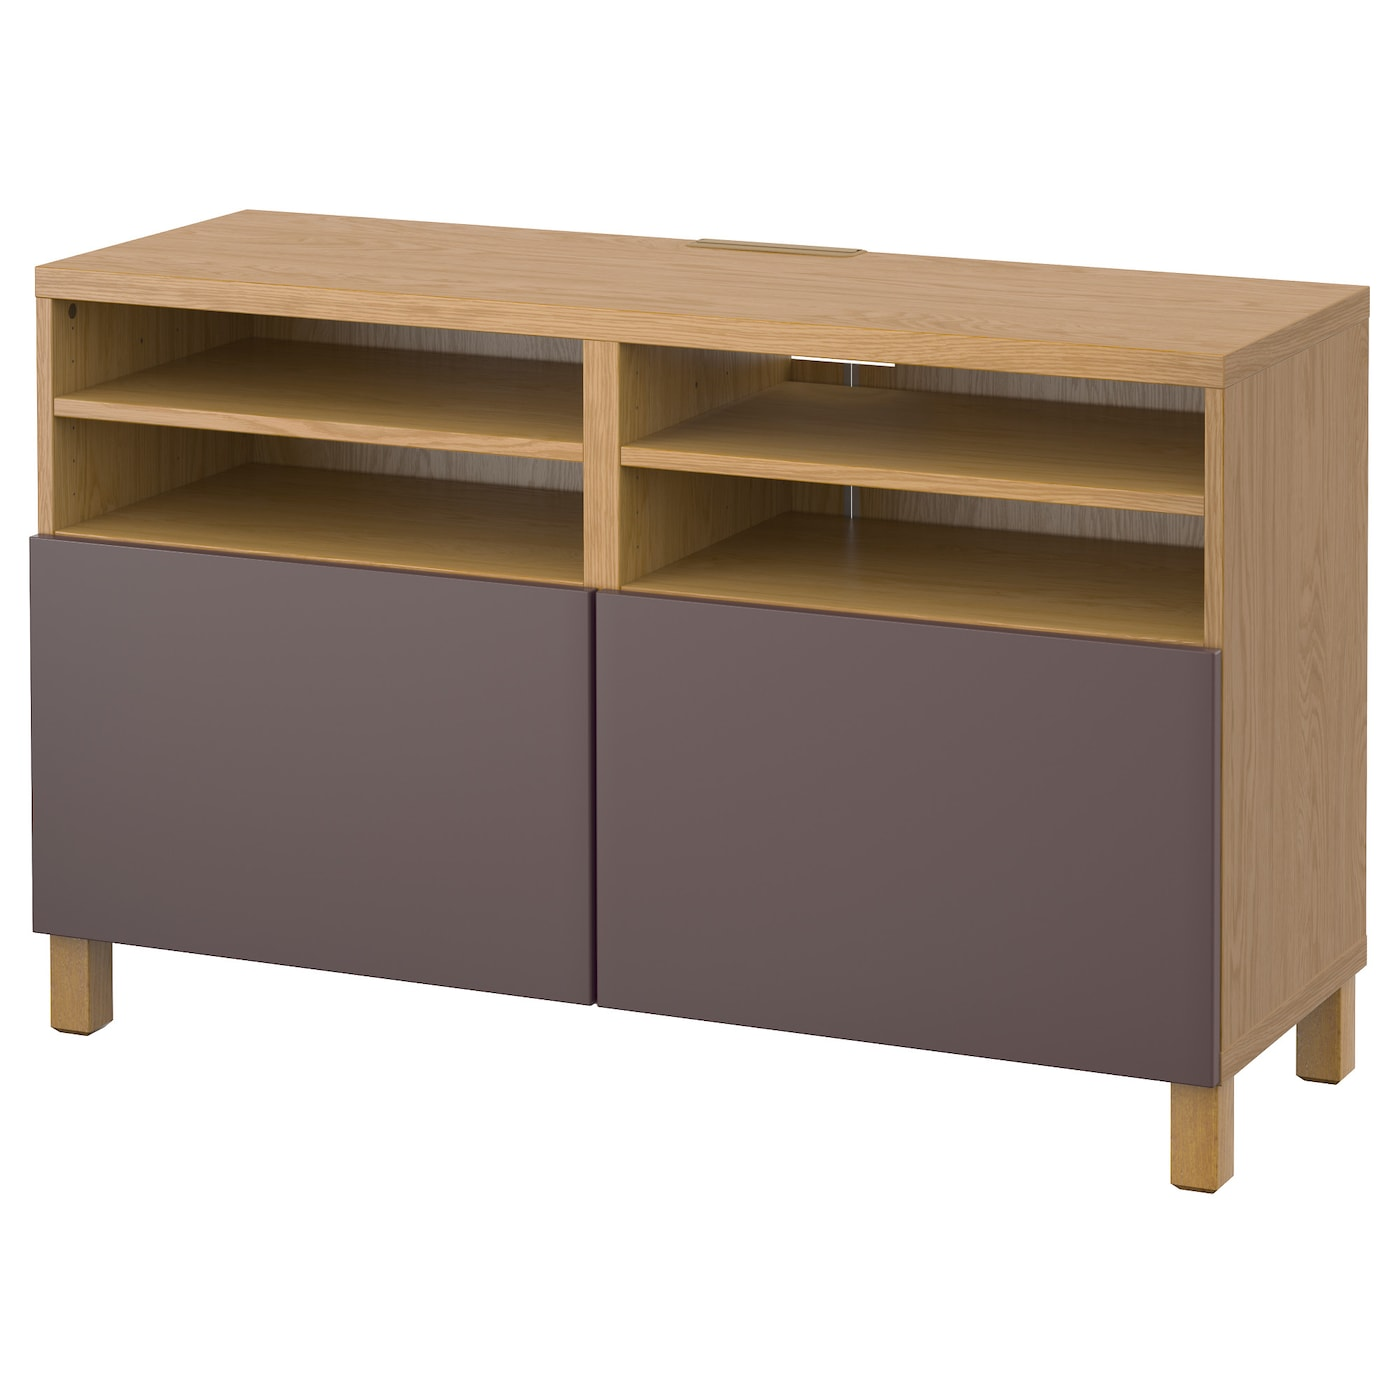 Best Tv Bench With Doors Oak Effect Valviken Dark Brown 120x40x74 Cm Ikea